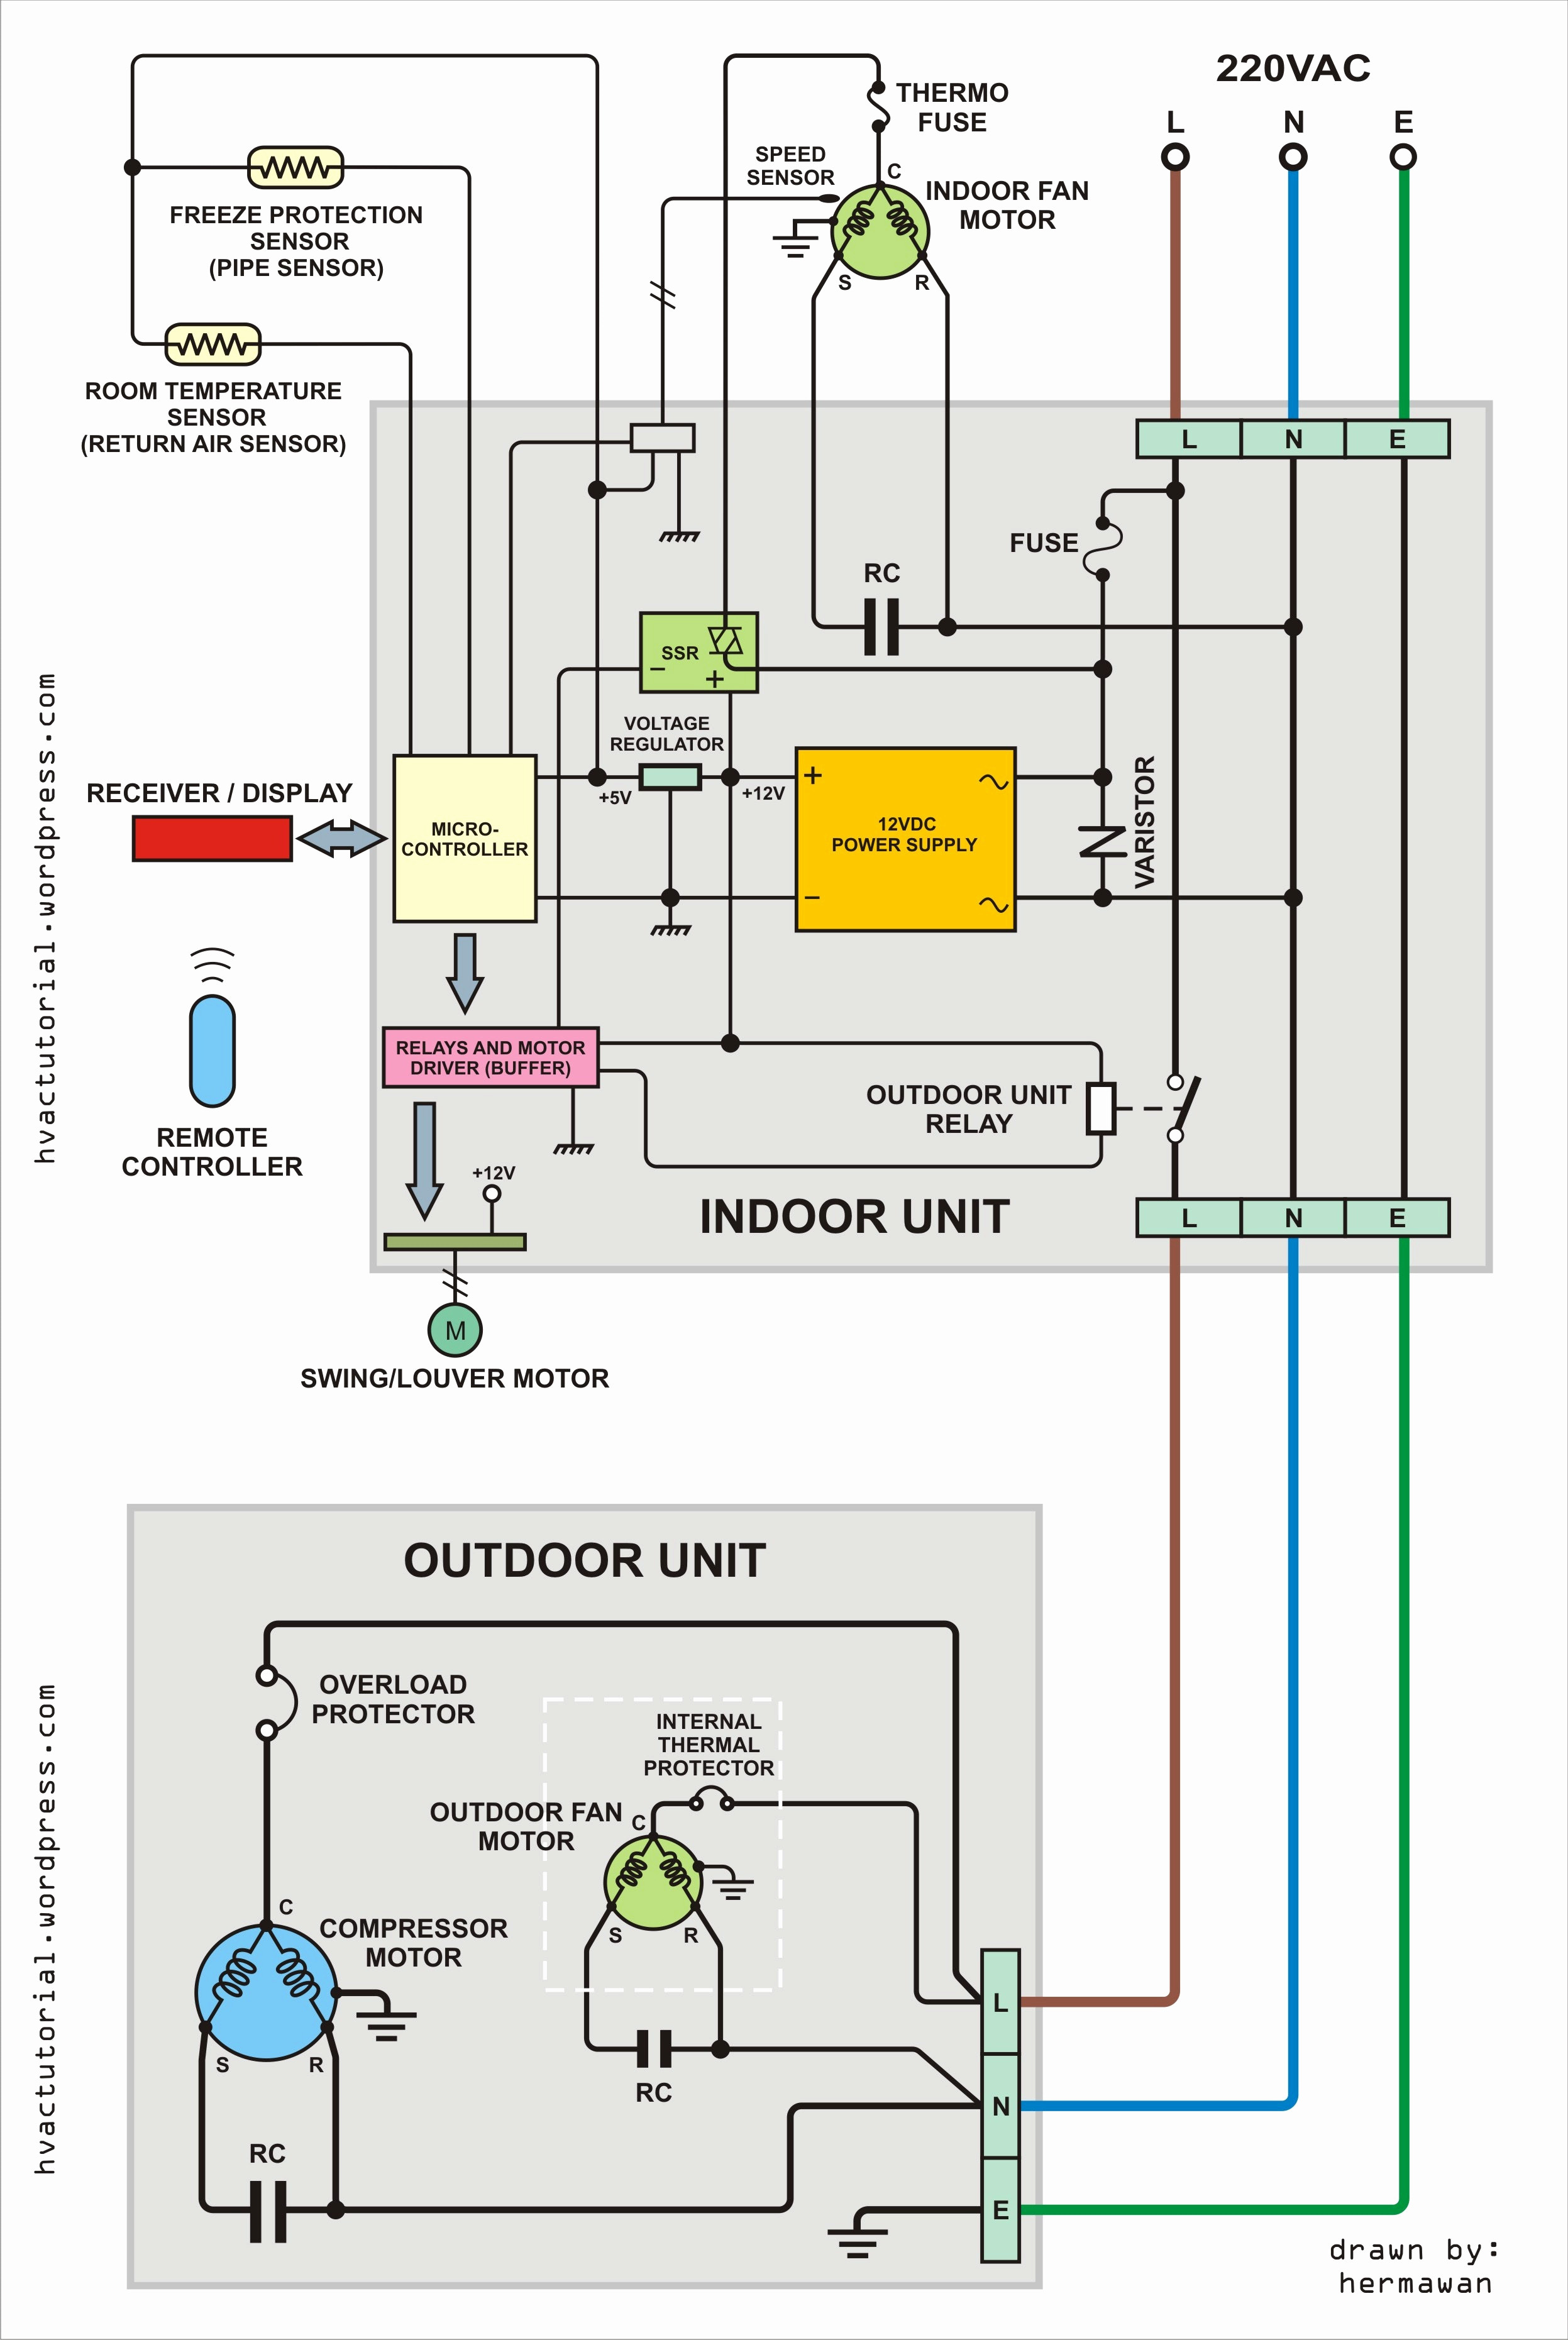 Hudson Brothers Trailer Wiring Diagram | Wiring Diagram - Hudson Trailer Wiring Diagram